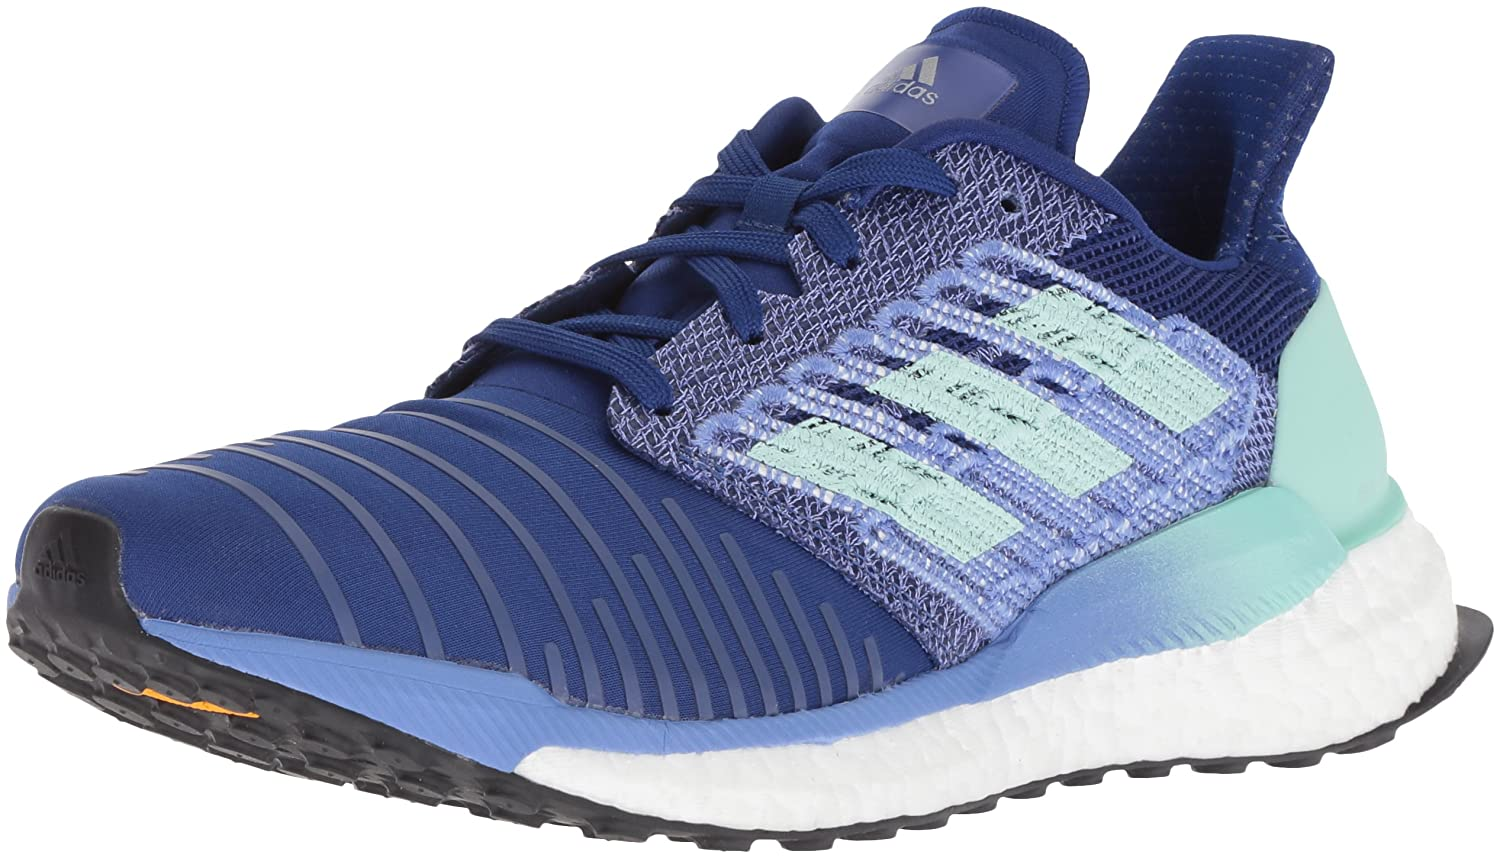 adidas Women's Solar Boost Running Shoe B07D9F181P 5.5 B(M) US|Ash Grey/Onix/Yellow